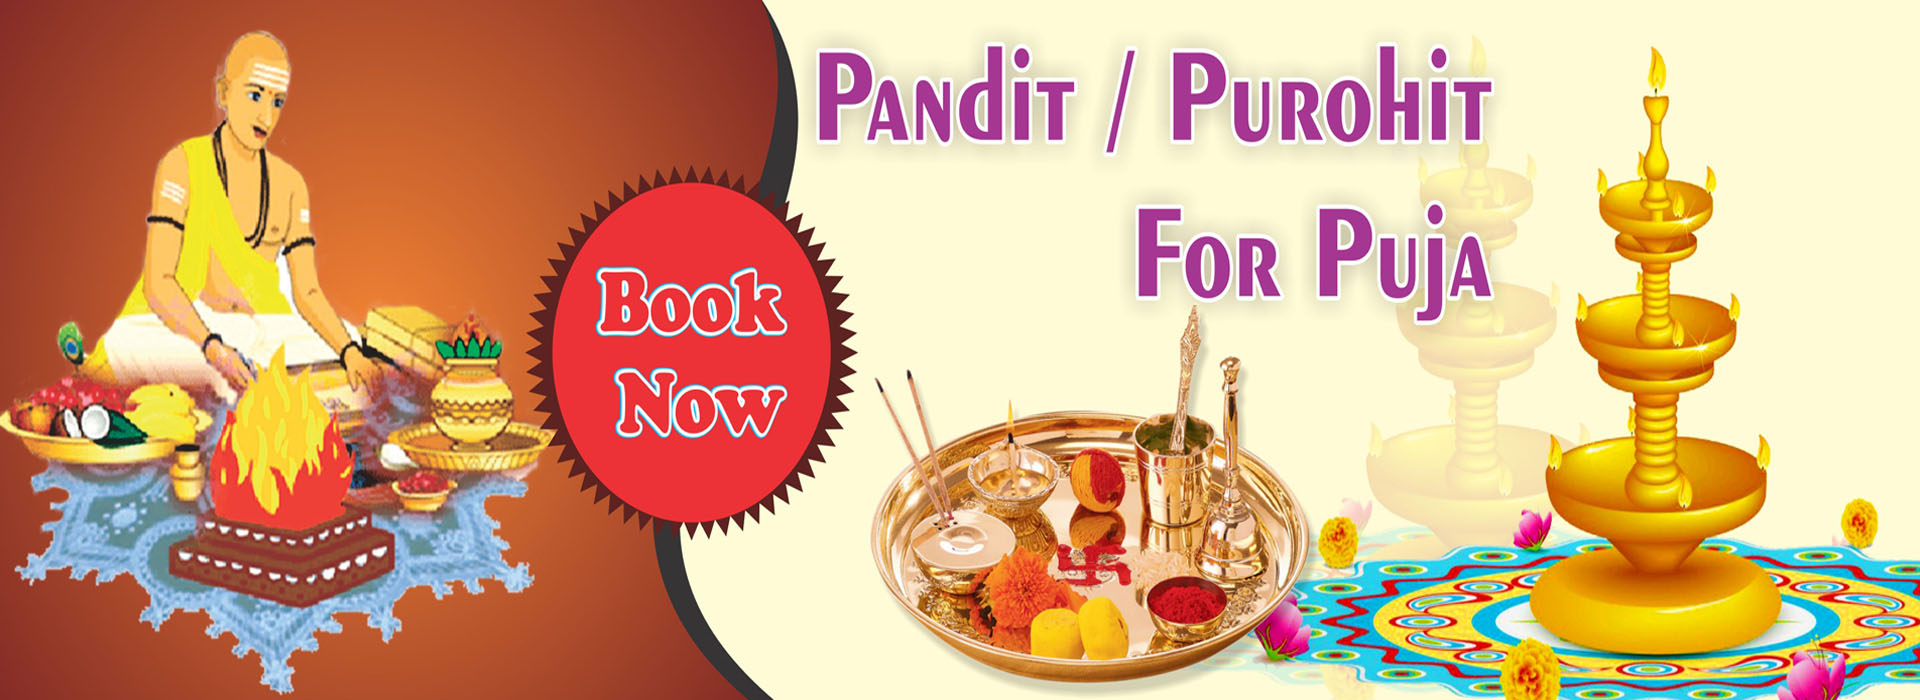 Book Pandit & Purohit for Puja on Bhagwanbhajan.com